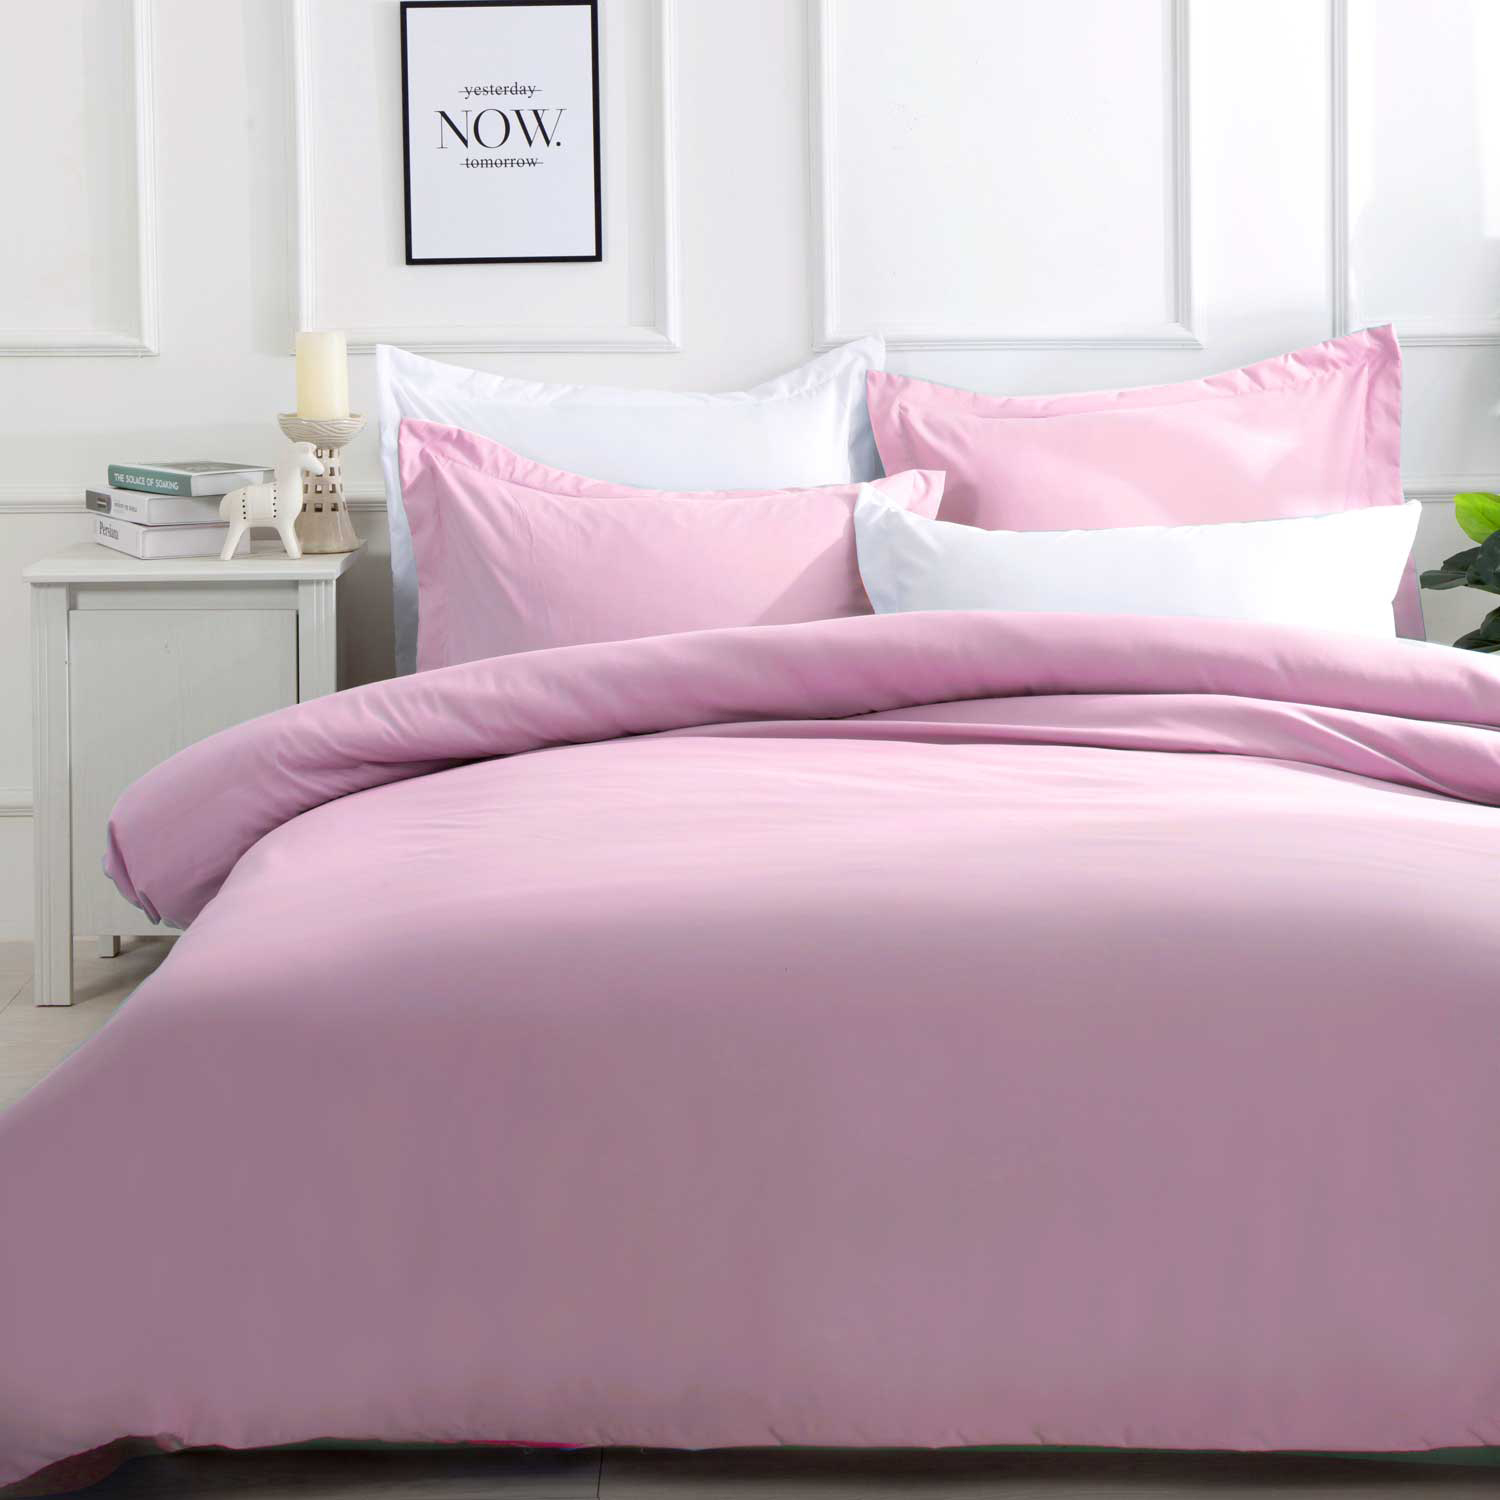 Pink Samia Quilt Cover Set Temple Webster